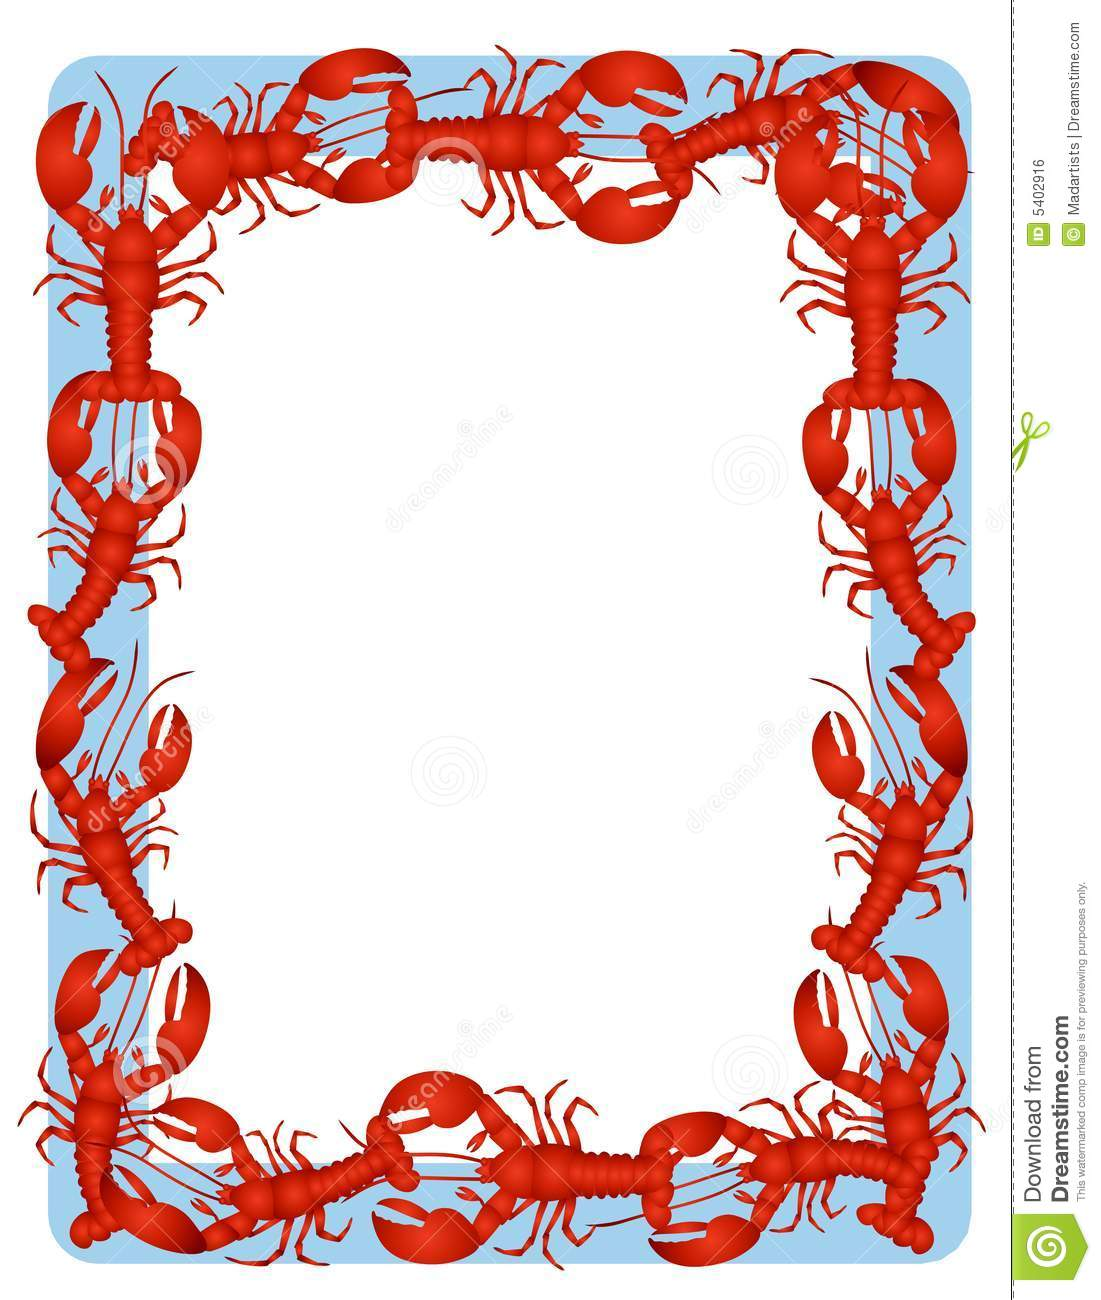 Background clipart border. Cooking borders and frames